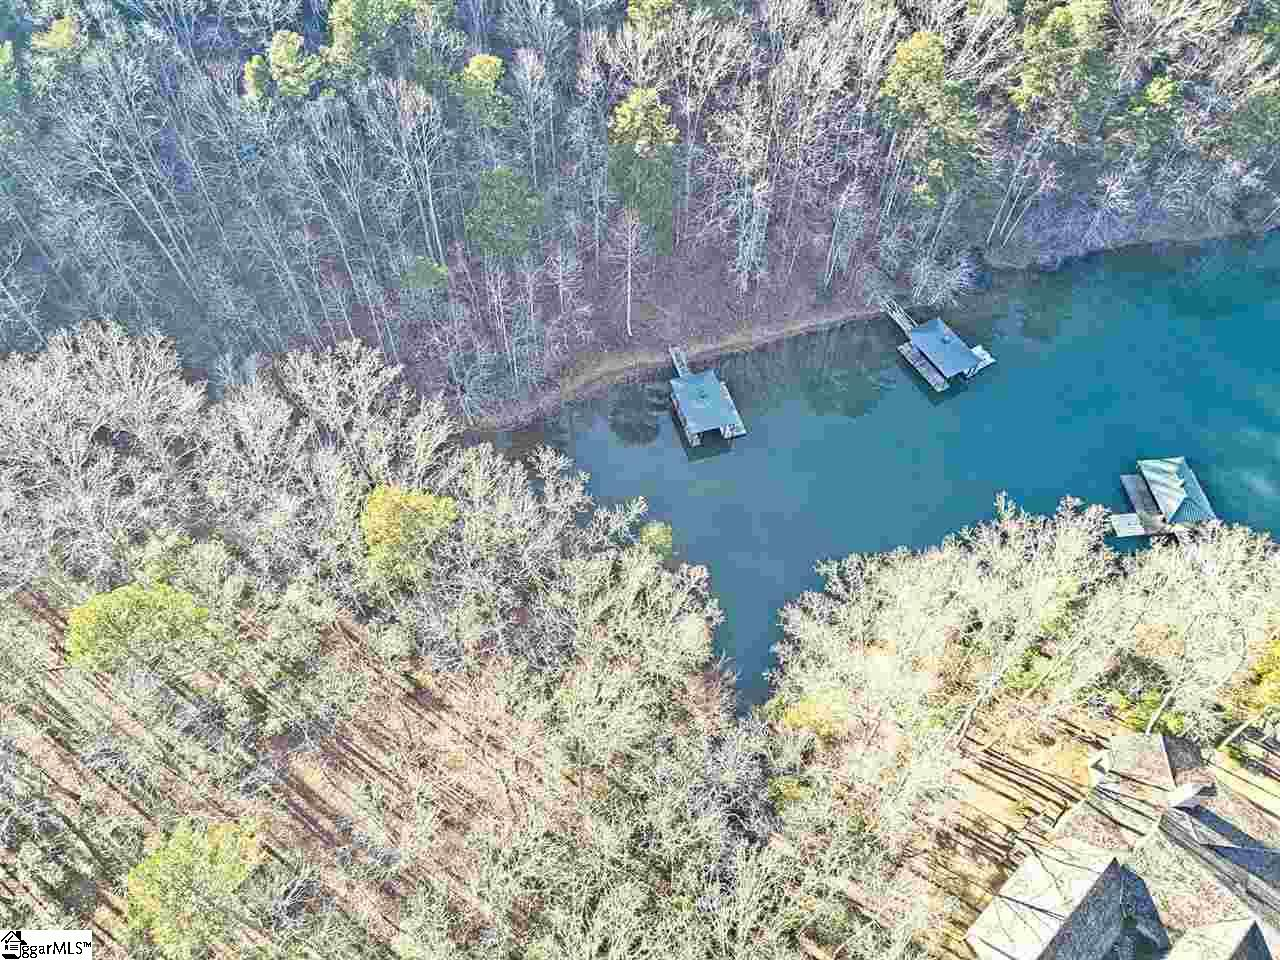 Picturesque 2.3 Acre waterfront property located in prestigious Lake Keowee gated golf course community Cliffs at Keowee Springs. Private and convenient. Just 16.6 miles to Clemson Memorial Stadium & 40 miles to downtown Greenville. End of cul de sac, private, gentle slope and great depth.